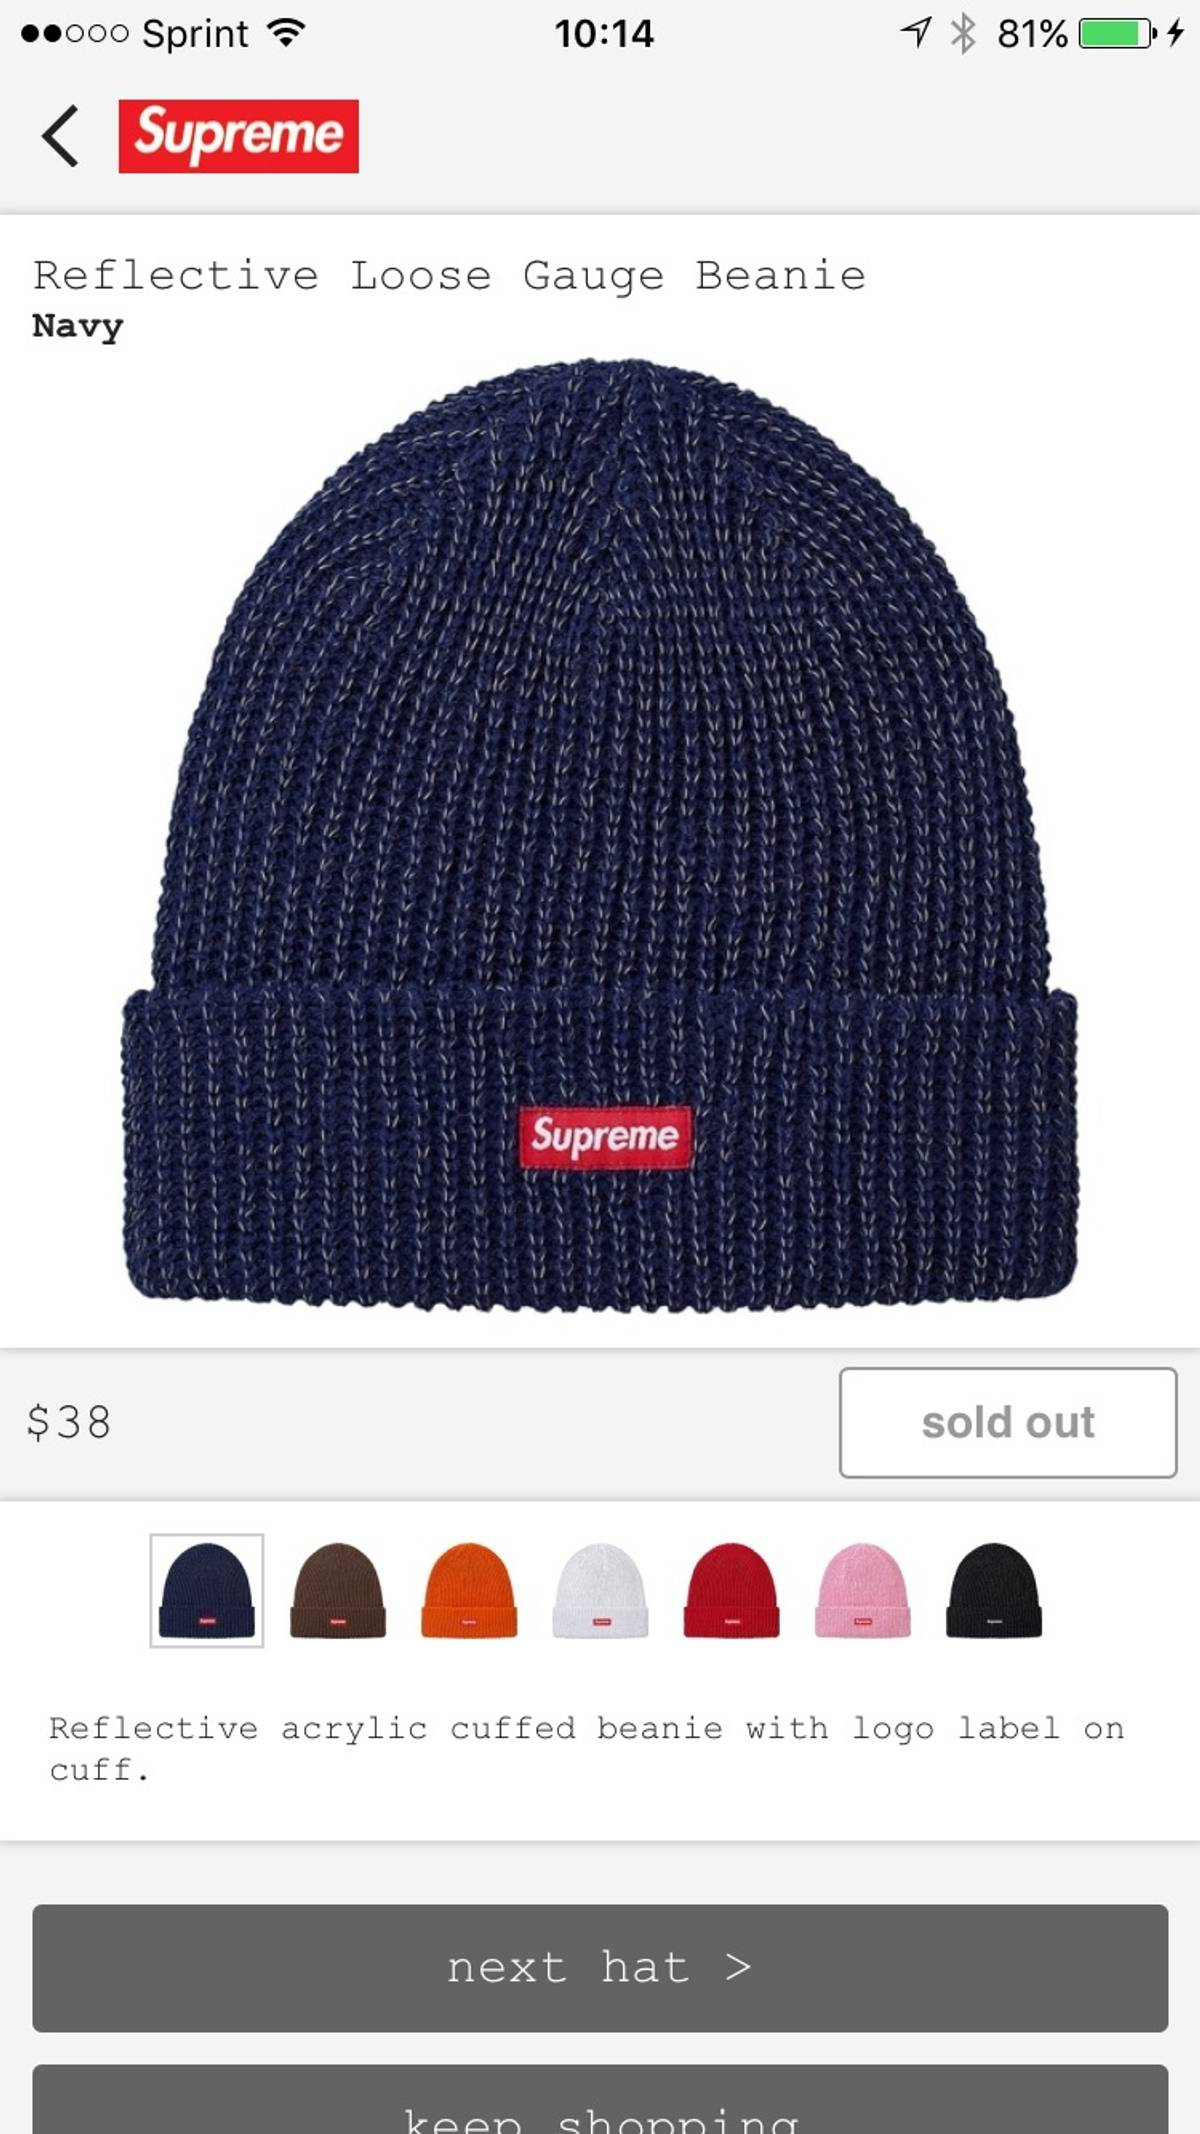 df31efb11705c Supreme Supreme Reflective Loose Gauge Beanie Blue FW17 Size one size -  Hats for Sale - Grailed